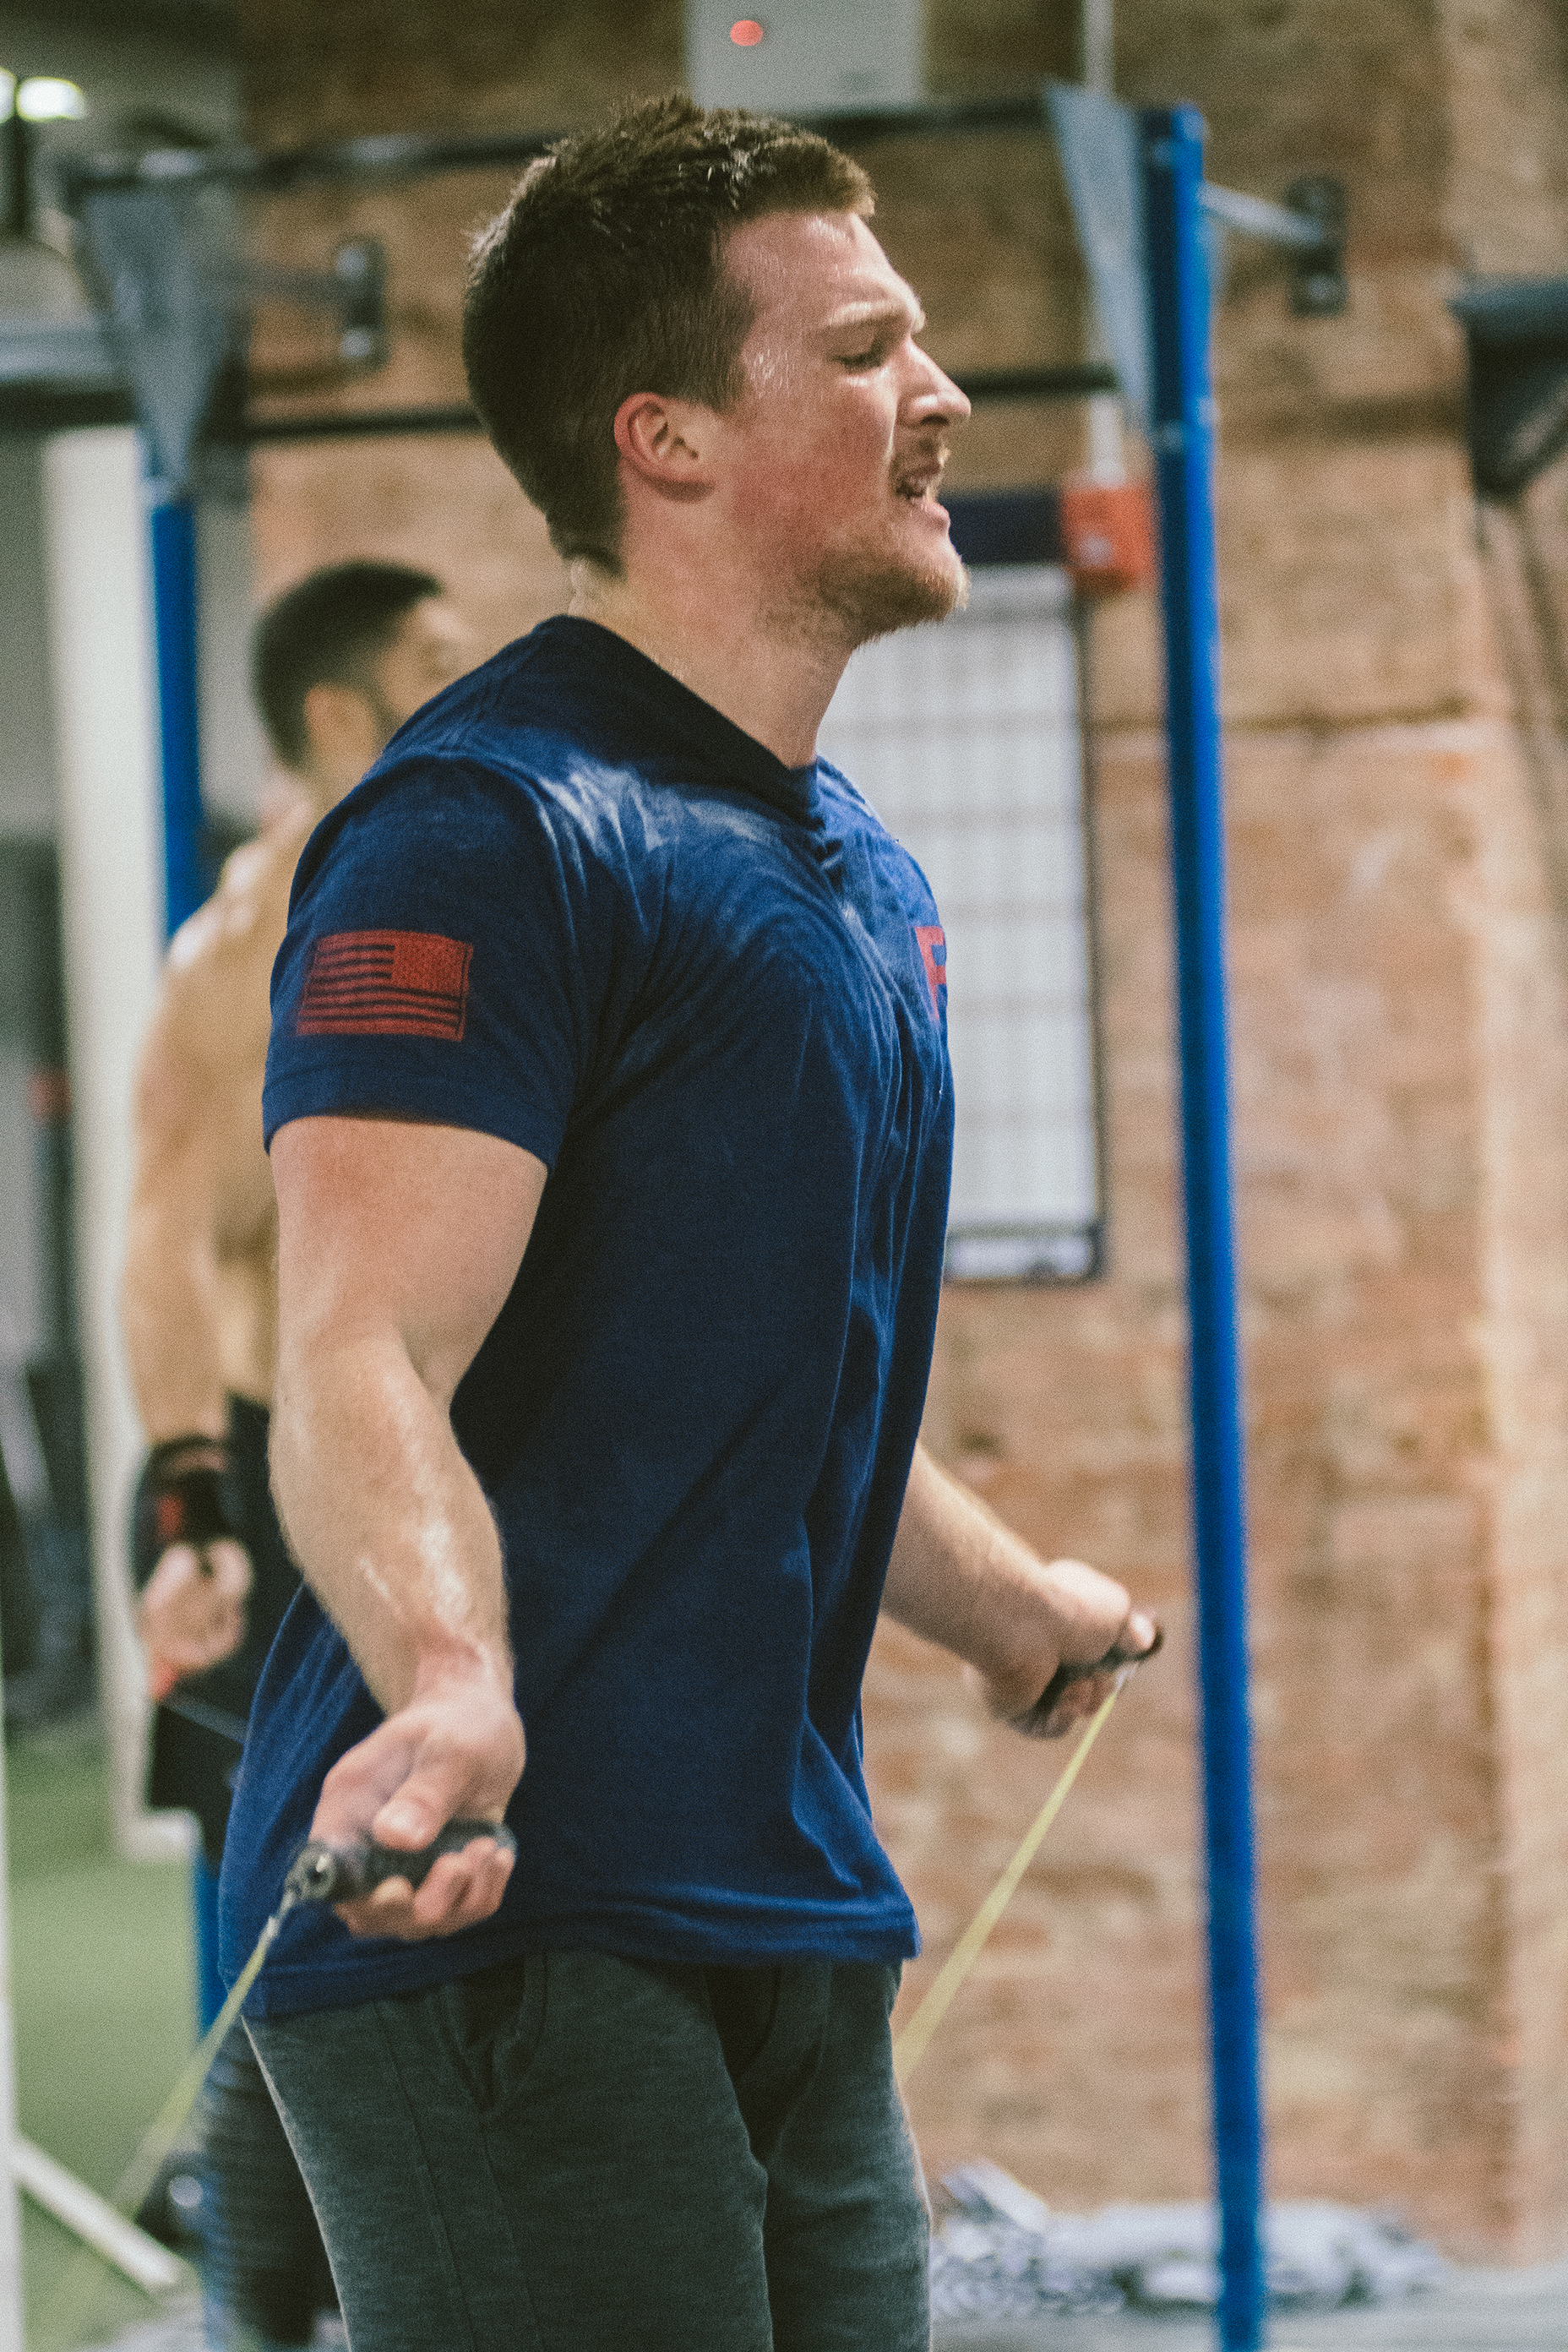 CrossFit Union Strong 17.5 009 20170325-2.jpg